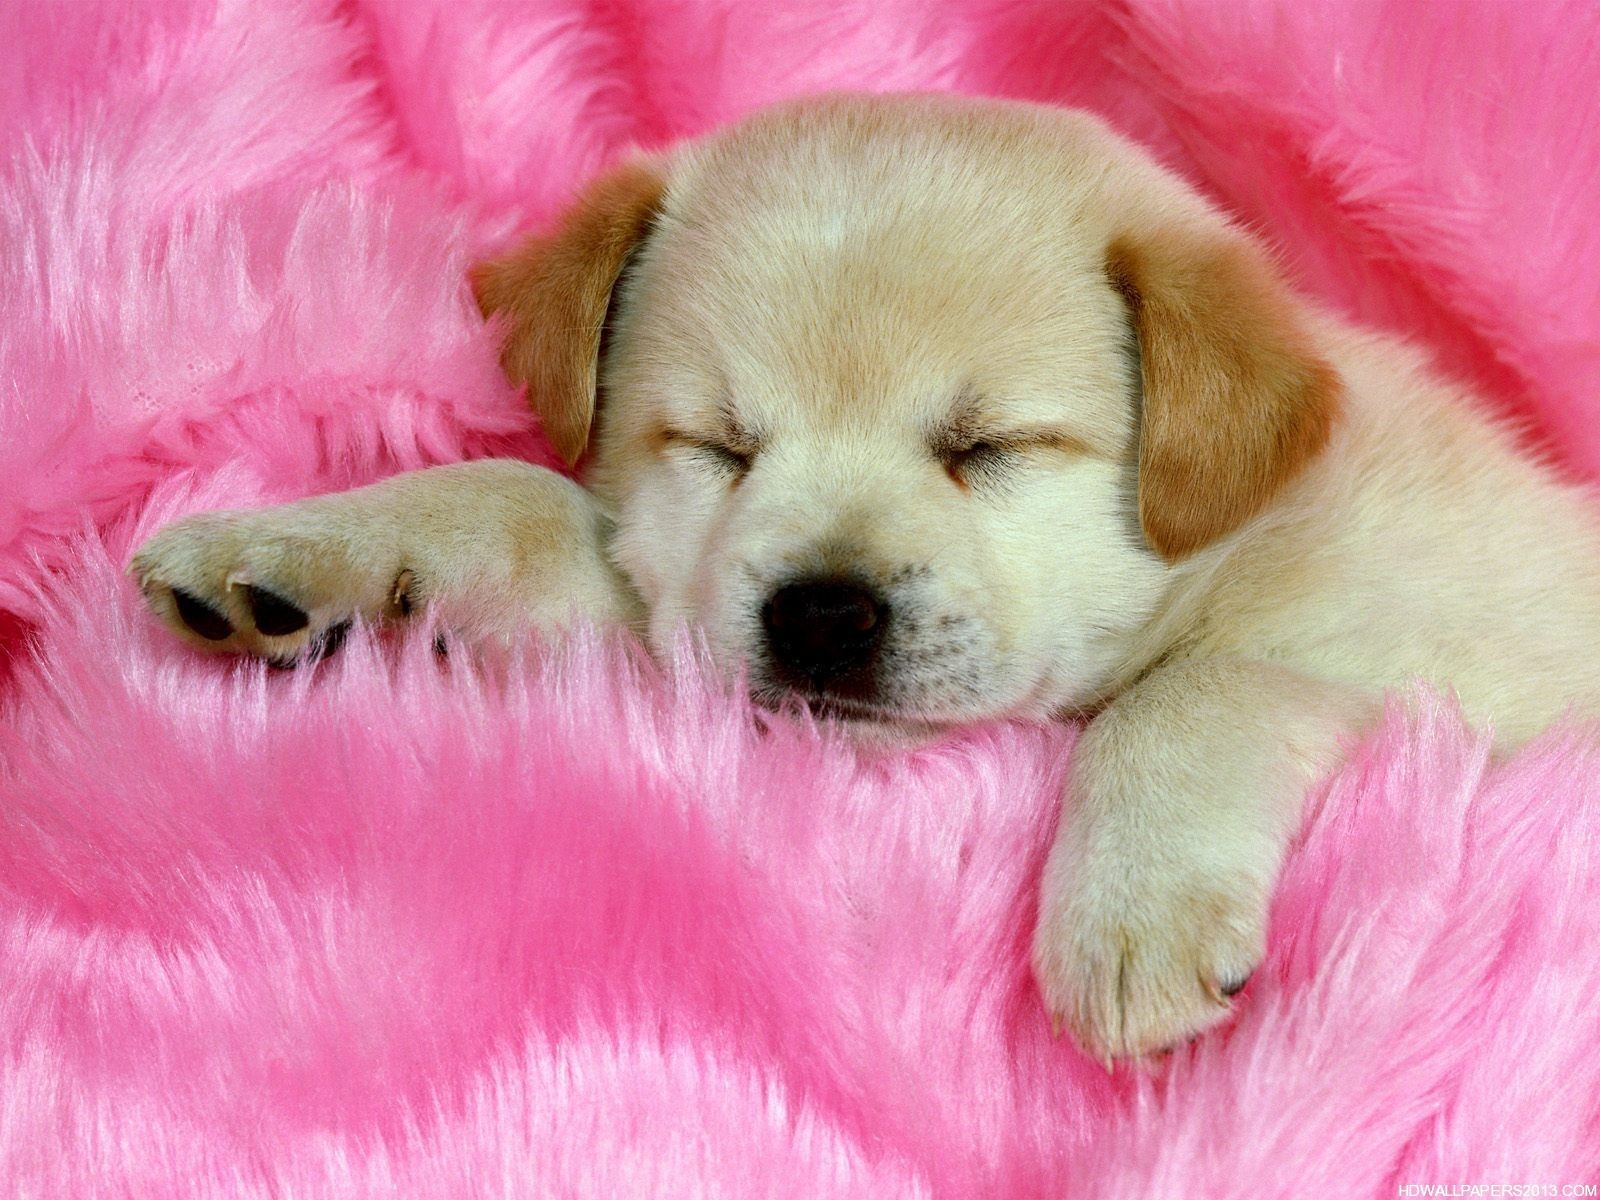 Cute Dogs Wallpaper 14470 Cute Puppy Wallpaper Sleeping Puppies